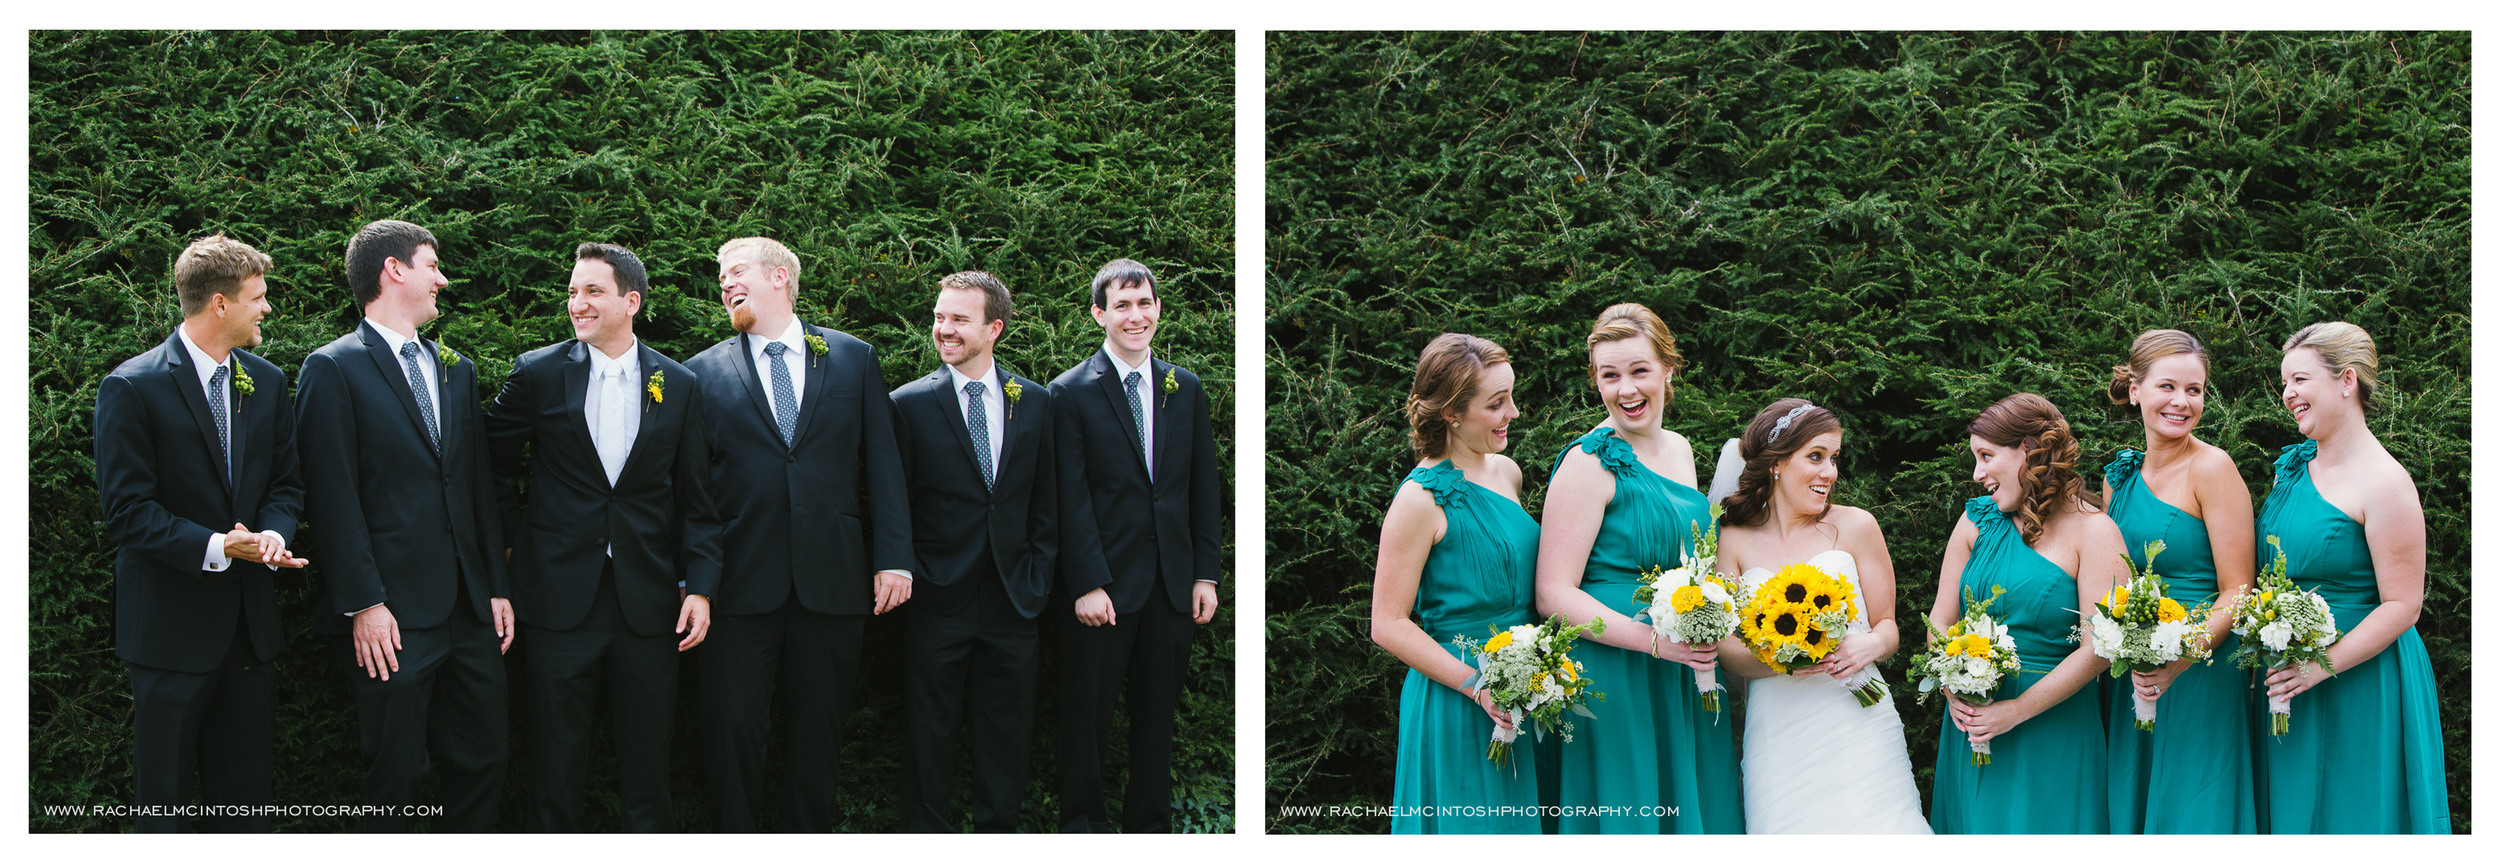 Asheville Wedding Photographer-Crest Center Wedding-Erin & Brian's Biltmore Wedding 10.jpg